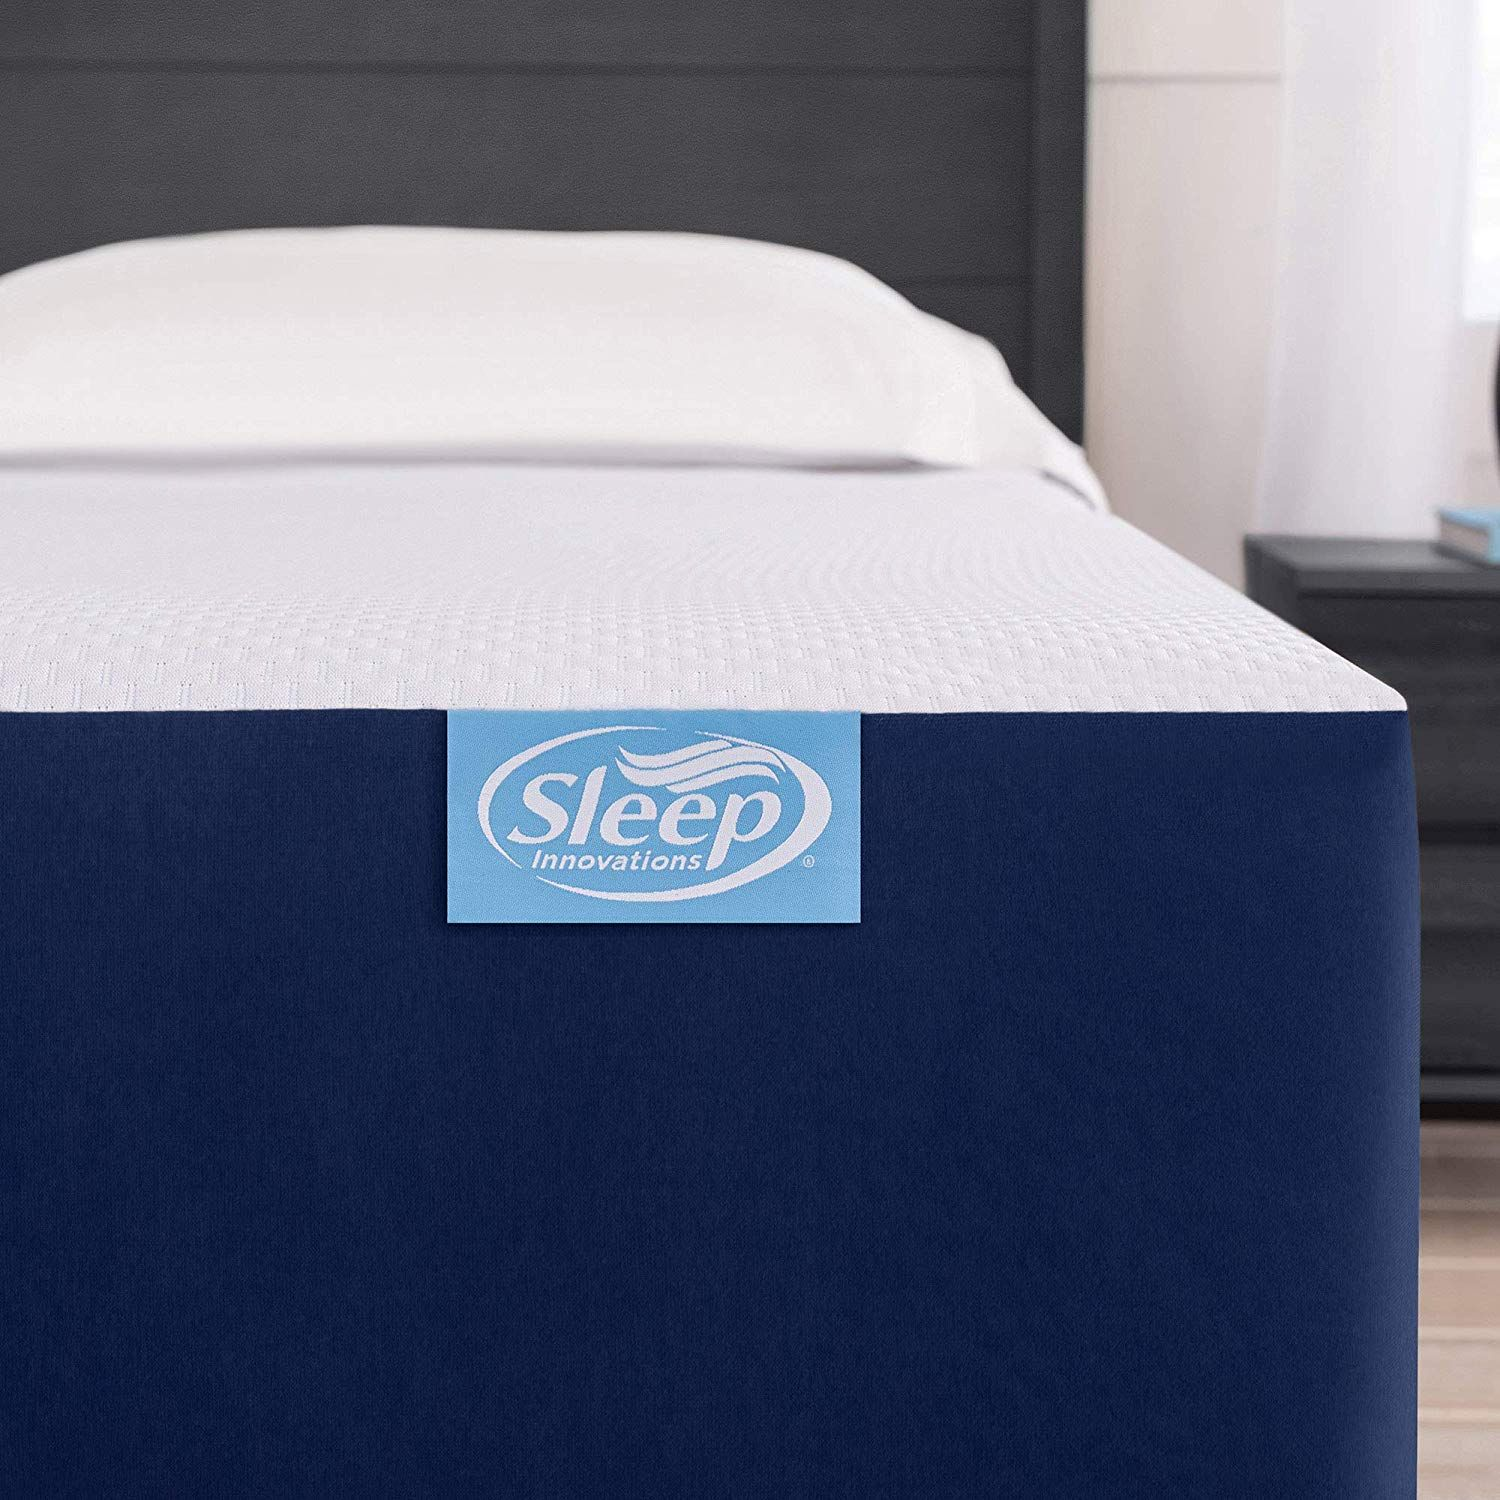 Sleep Innovations Marley 10 Inch Cooling Gel Memory Foam Mattress Bed In A Box Petagadget In 2020 Bed Mattress Memory Foam Foam Mattress Bed Box Bed